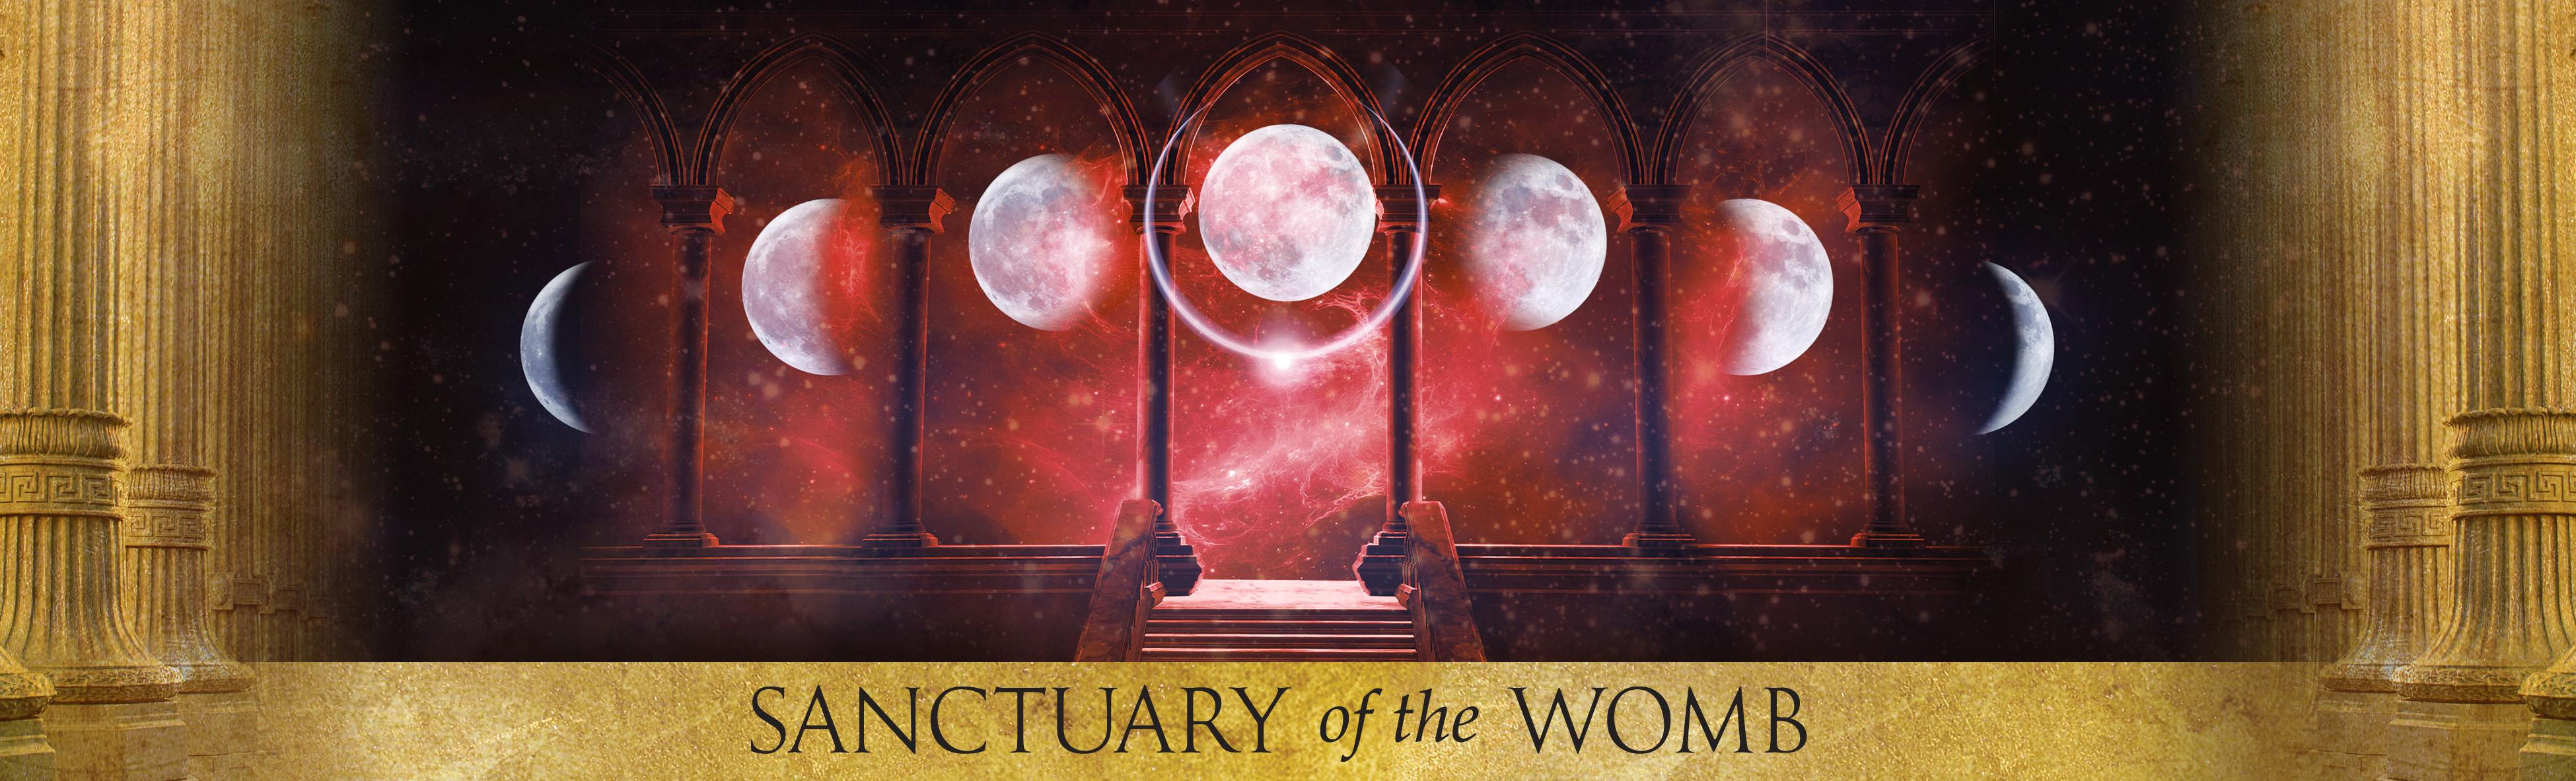 About | Sanctuary of the Womb